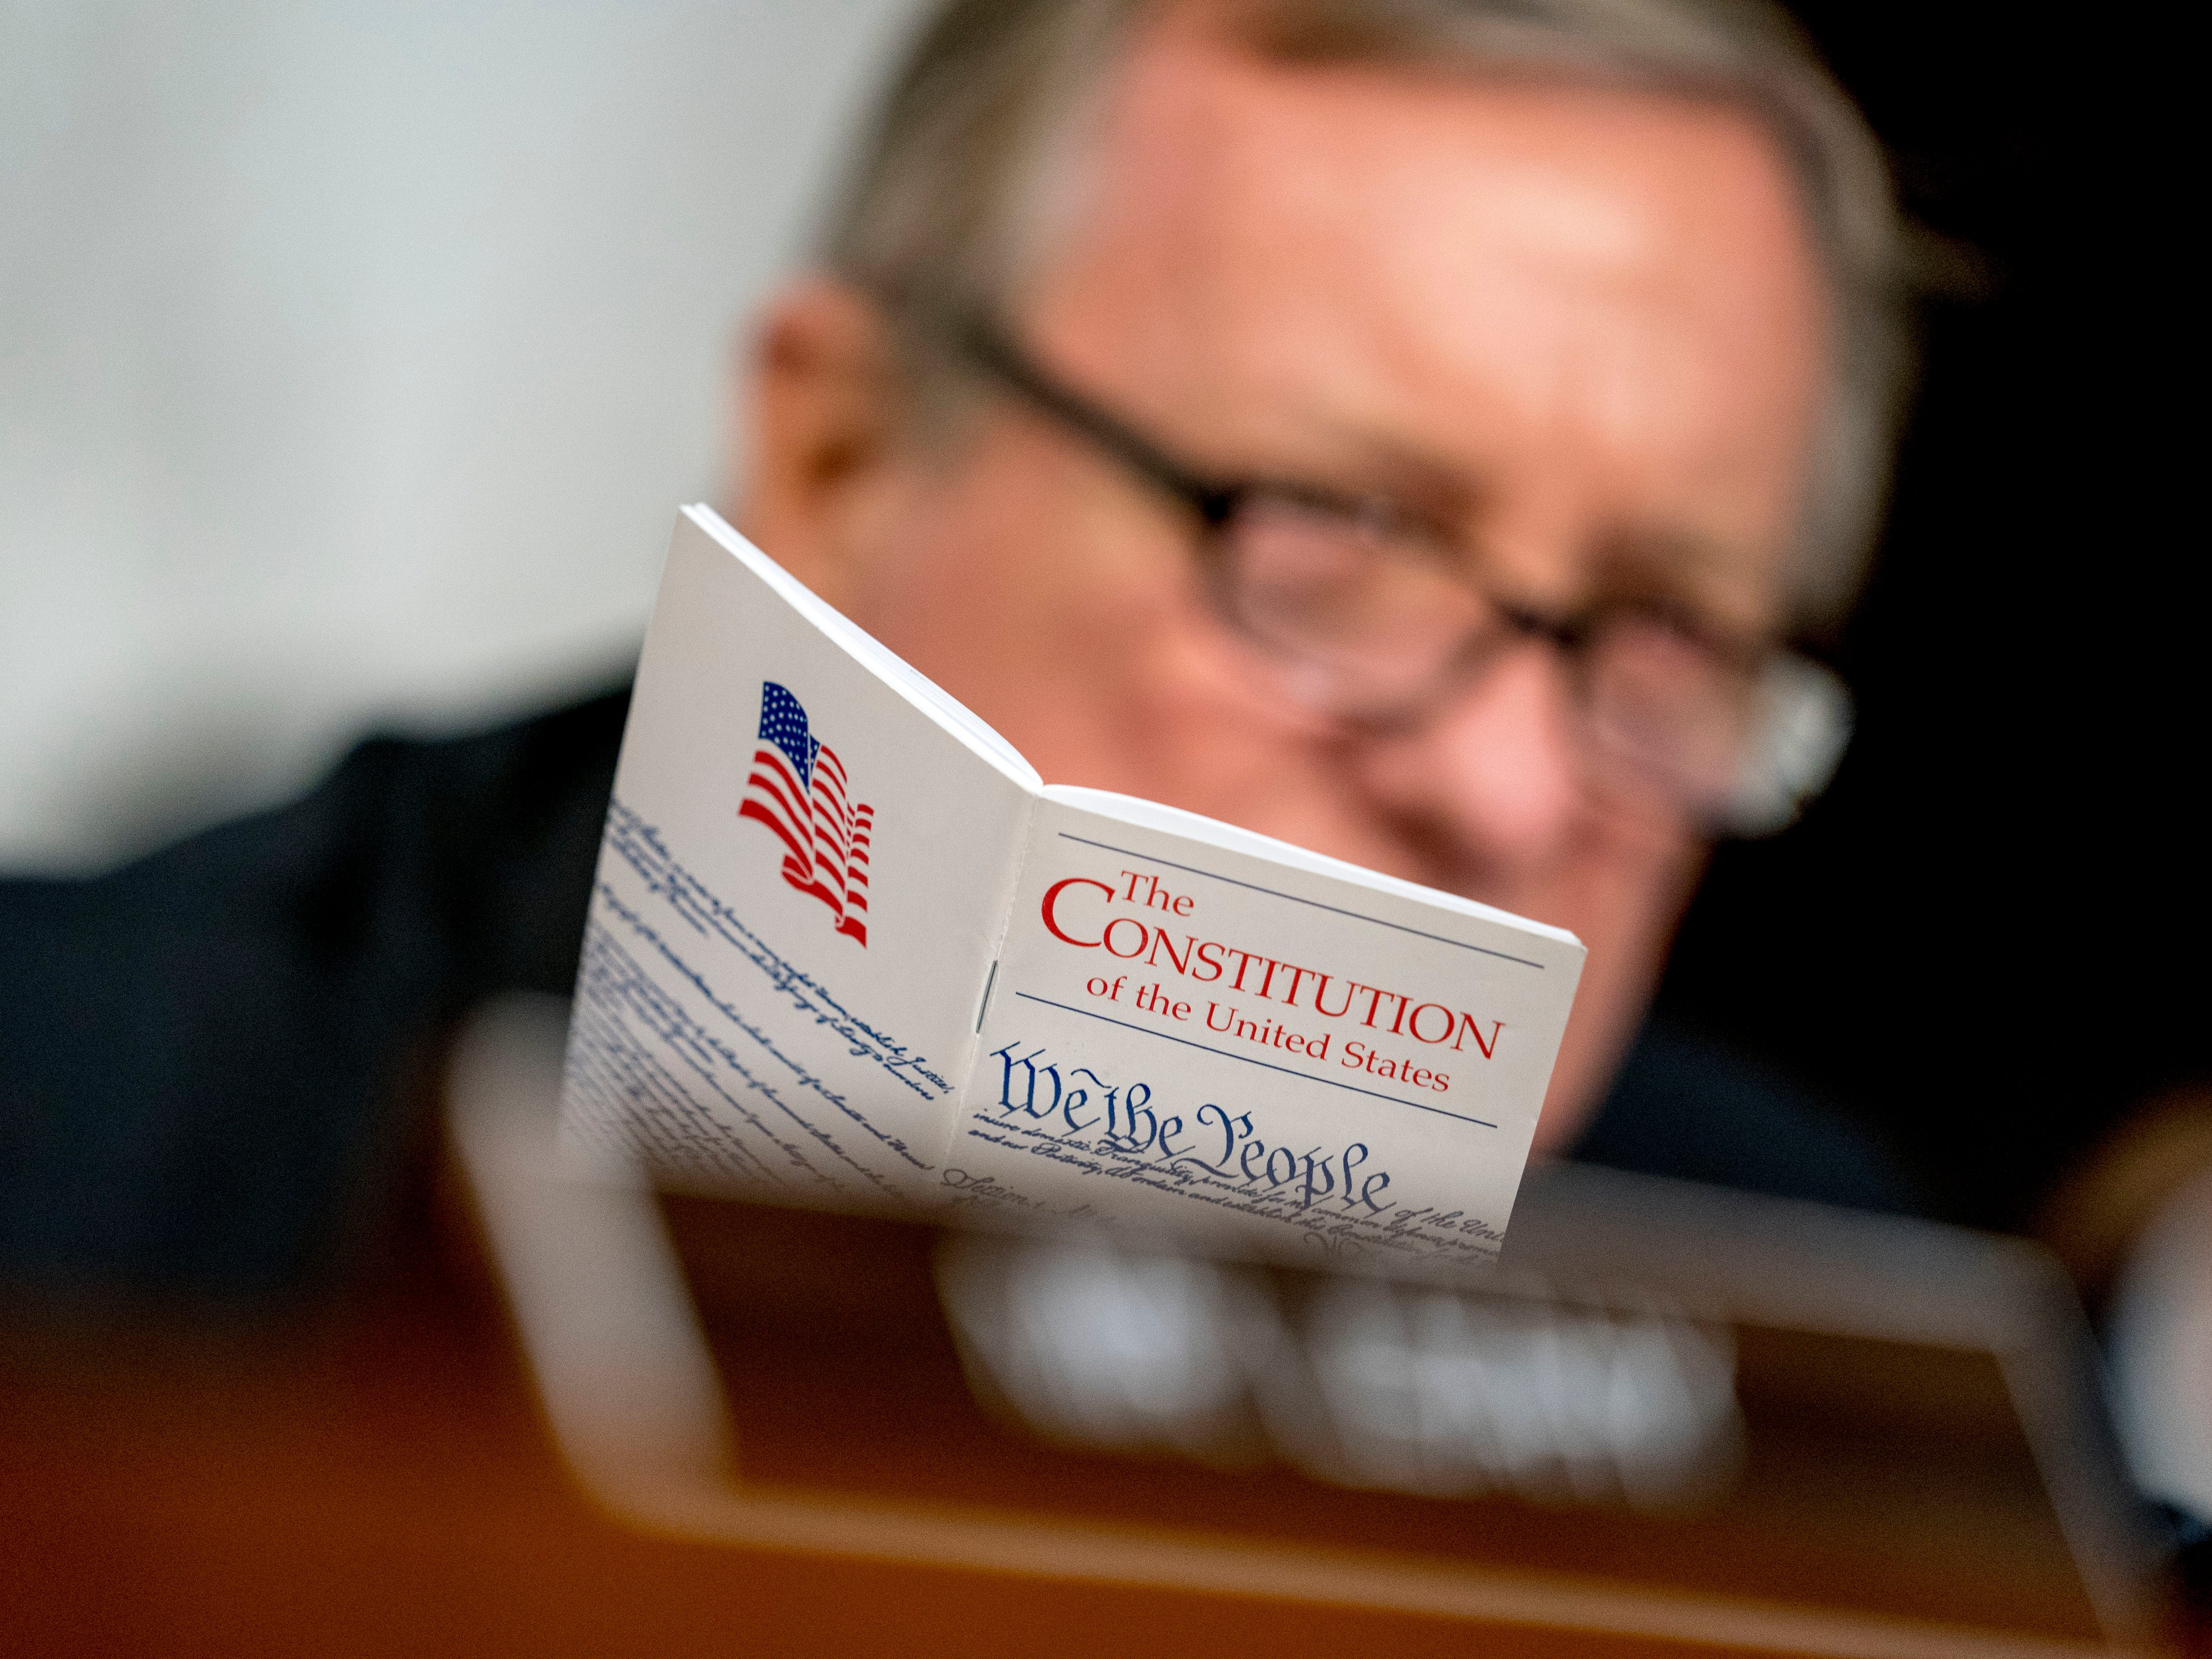 Sen. Dick Durbin, D-Ill. holds up a copy of The Constitution of the United States as he speaks as Supreme Court nominee Brett Kavanaugh, a federal appeals court judge, appears before the Senate Judiciary Committee on Capitol Hill in Washington, Tuesday, Sept. 4, 2018, to begin his confirmation to replace retired Justice Anthony Kennedy. (AP Photo/Andrew Harnik) ORG XMIT: DCAH128